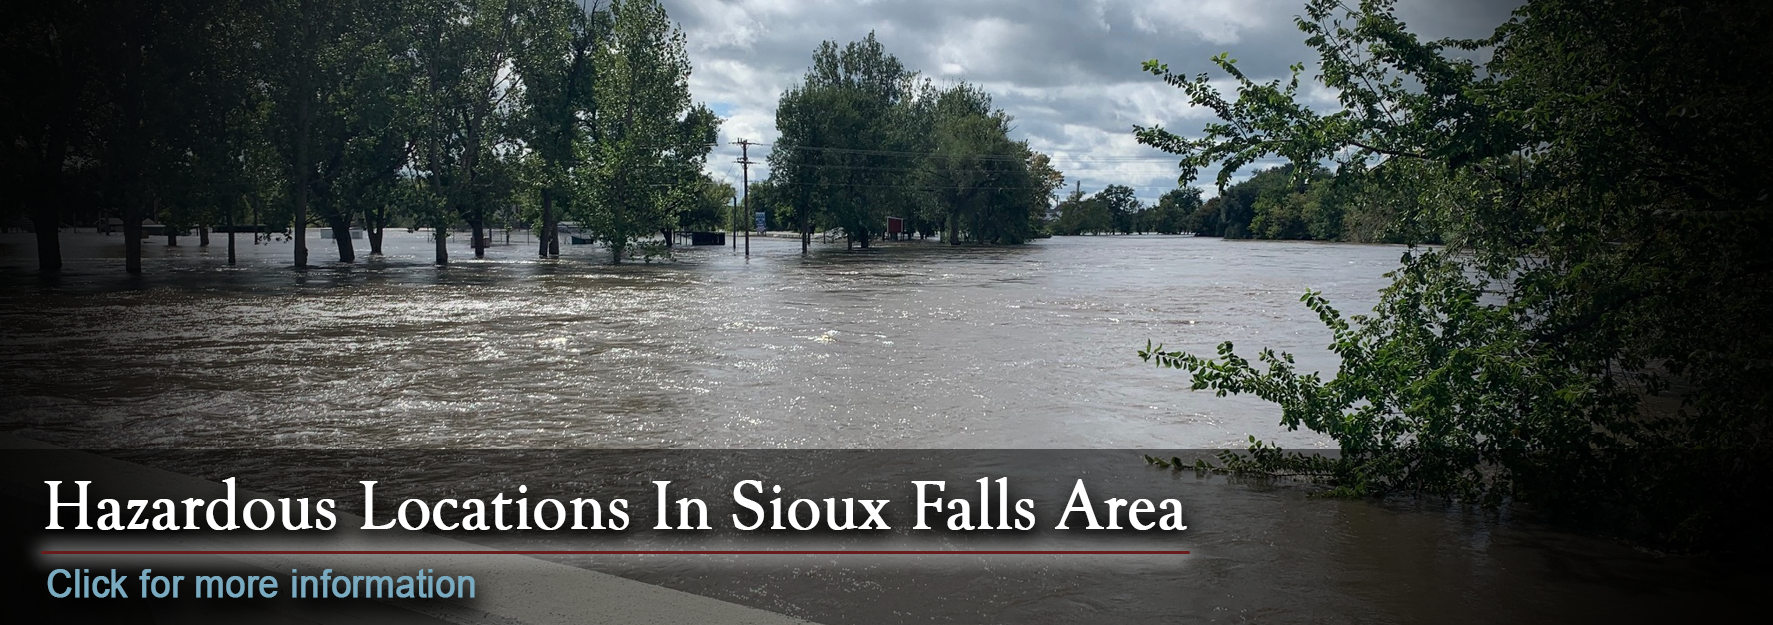 Hazardous Locations in the Sioux Falls Area